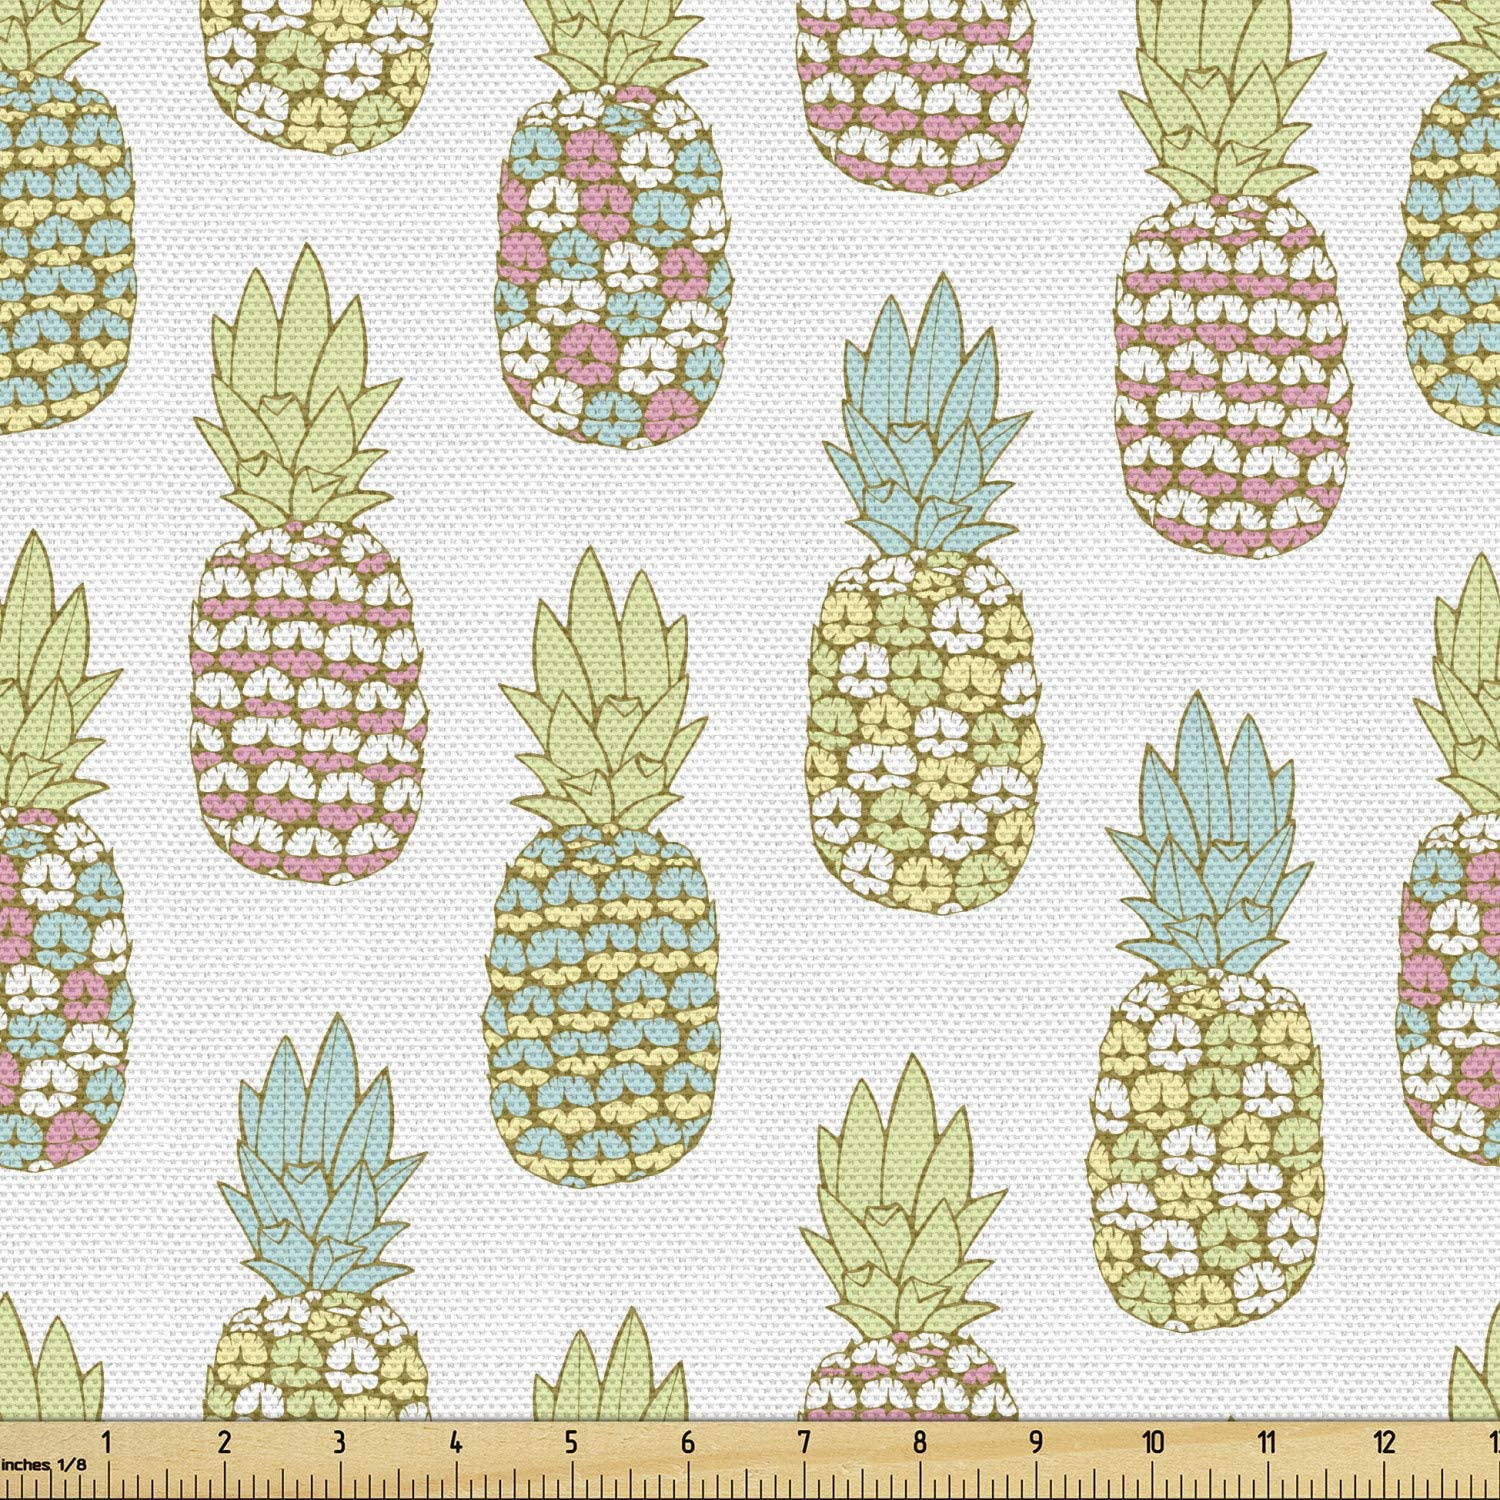 Ambesonne Pineapple Fabric by The Yard, Tropical Fruit Pattern in Pastel Colors Juicy Nutritious and Ripe Summer Food, Decorative Fabric for Upholstery and Home Accents, 3 Yards, Pale Green